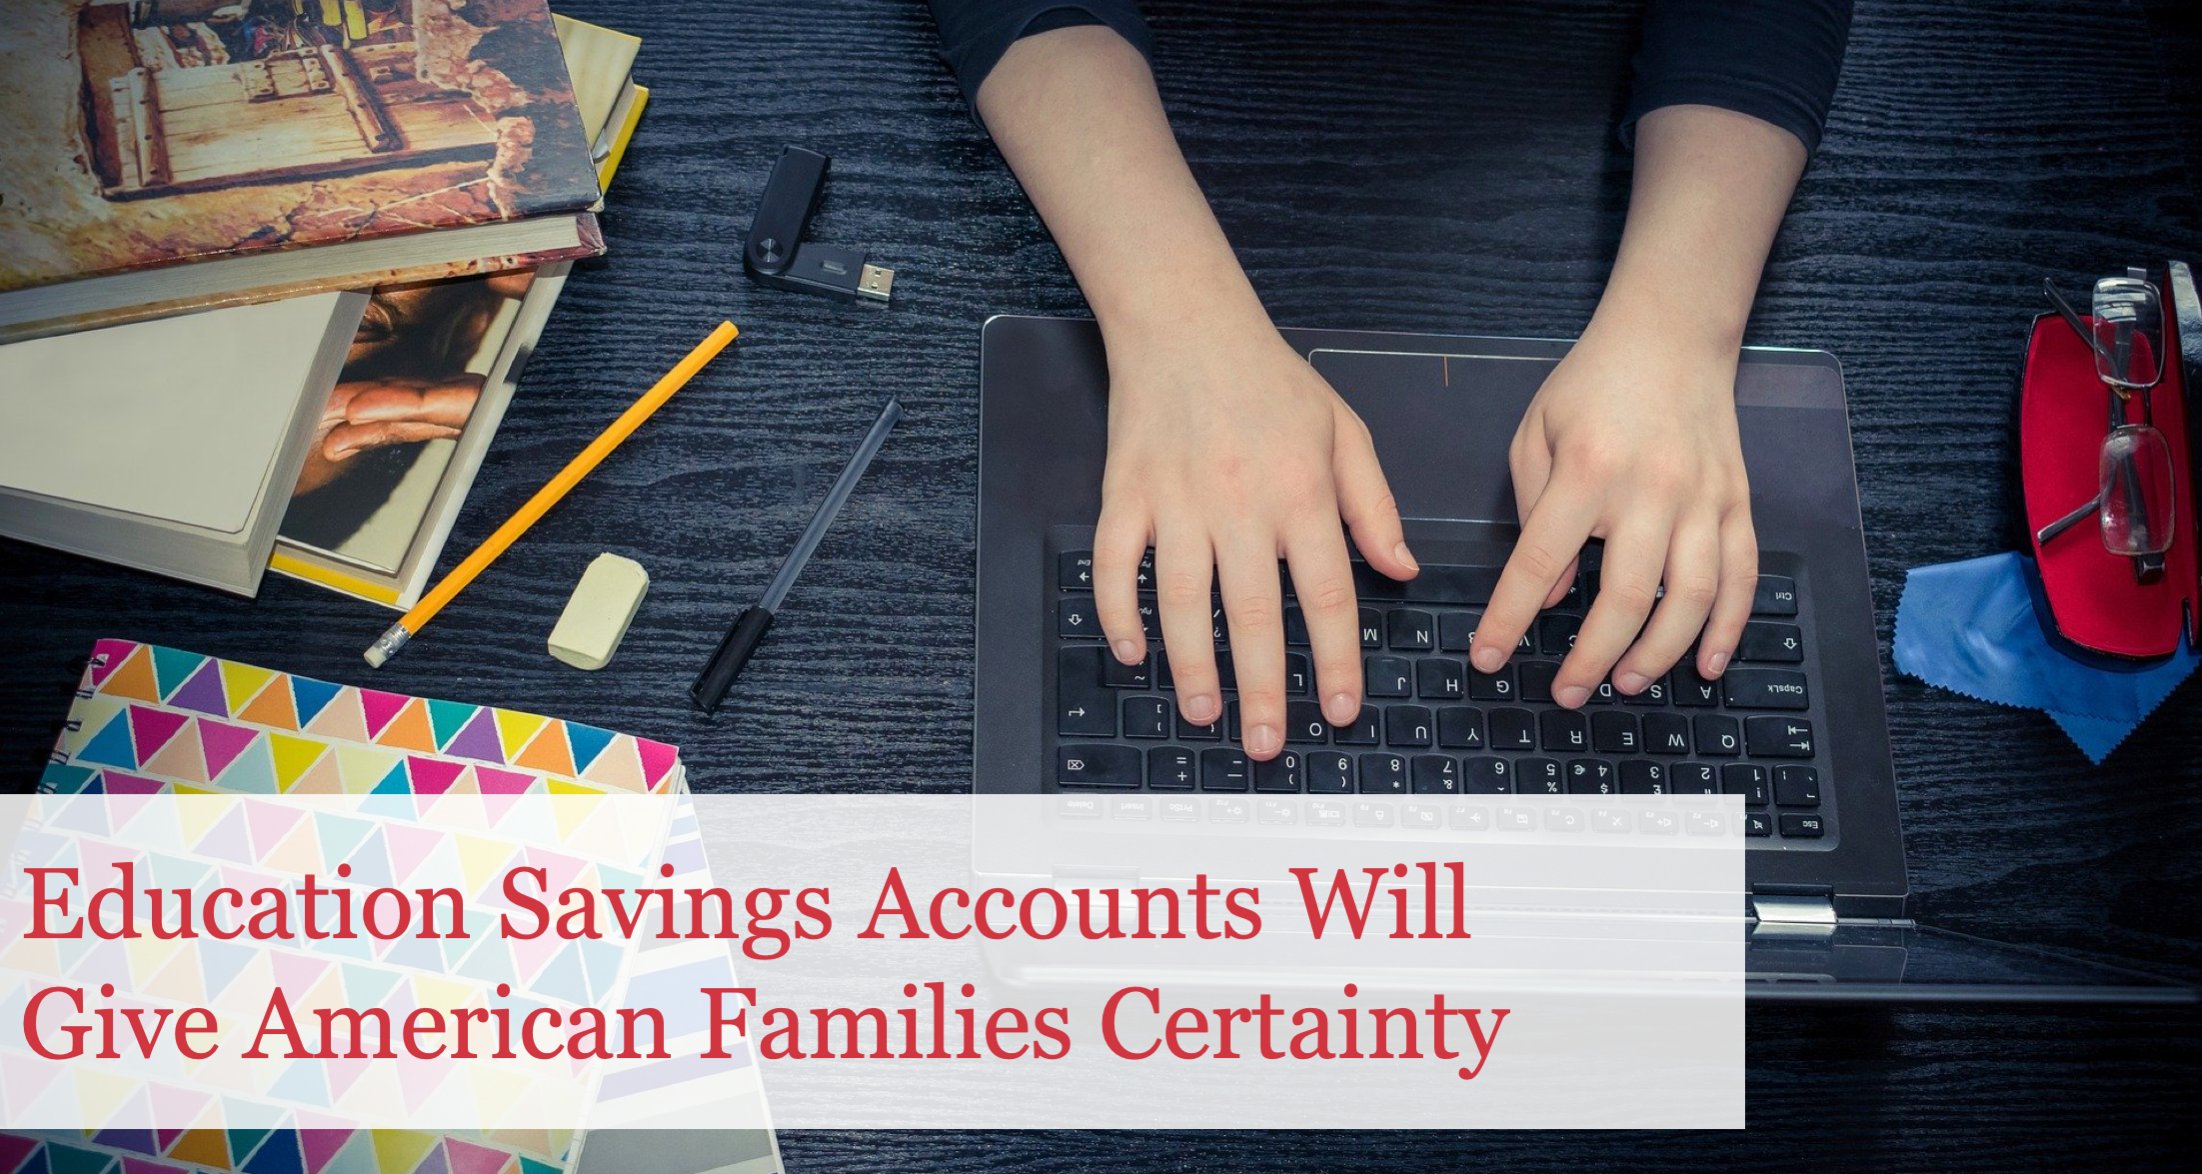 The Buckeye Institute: Education Savings Accounts Will Give American Families Certainty